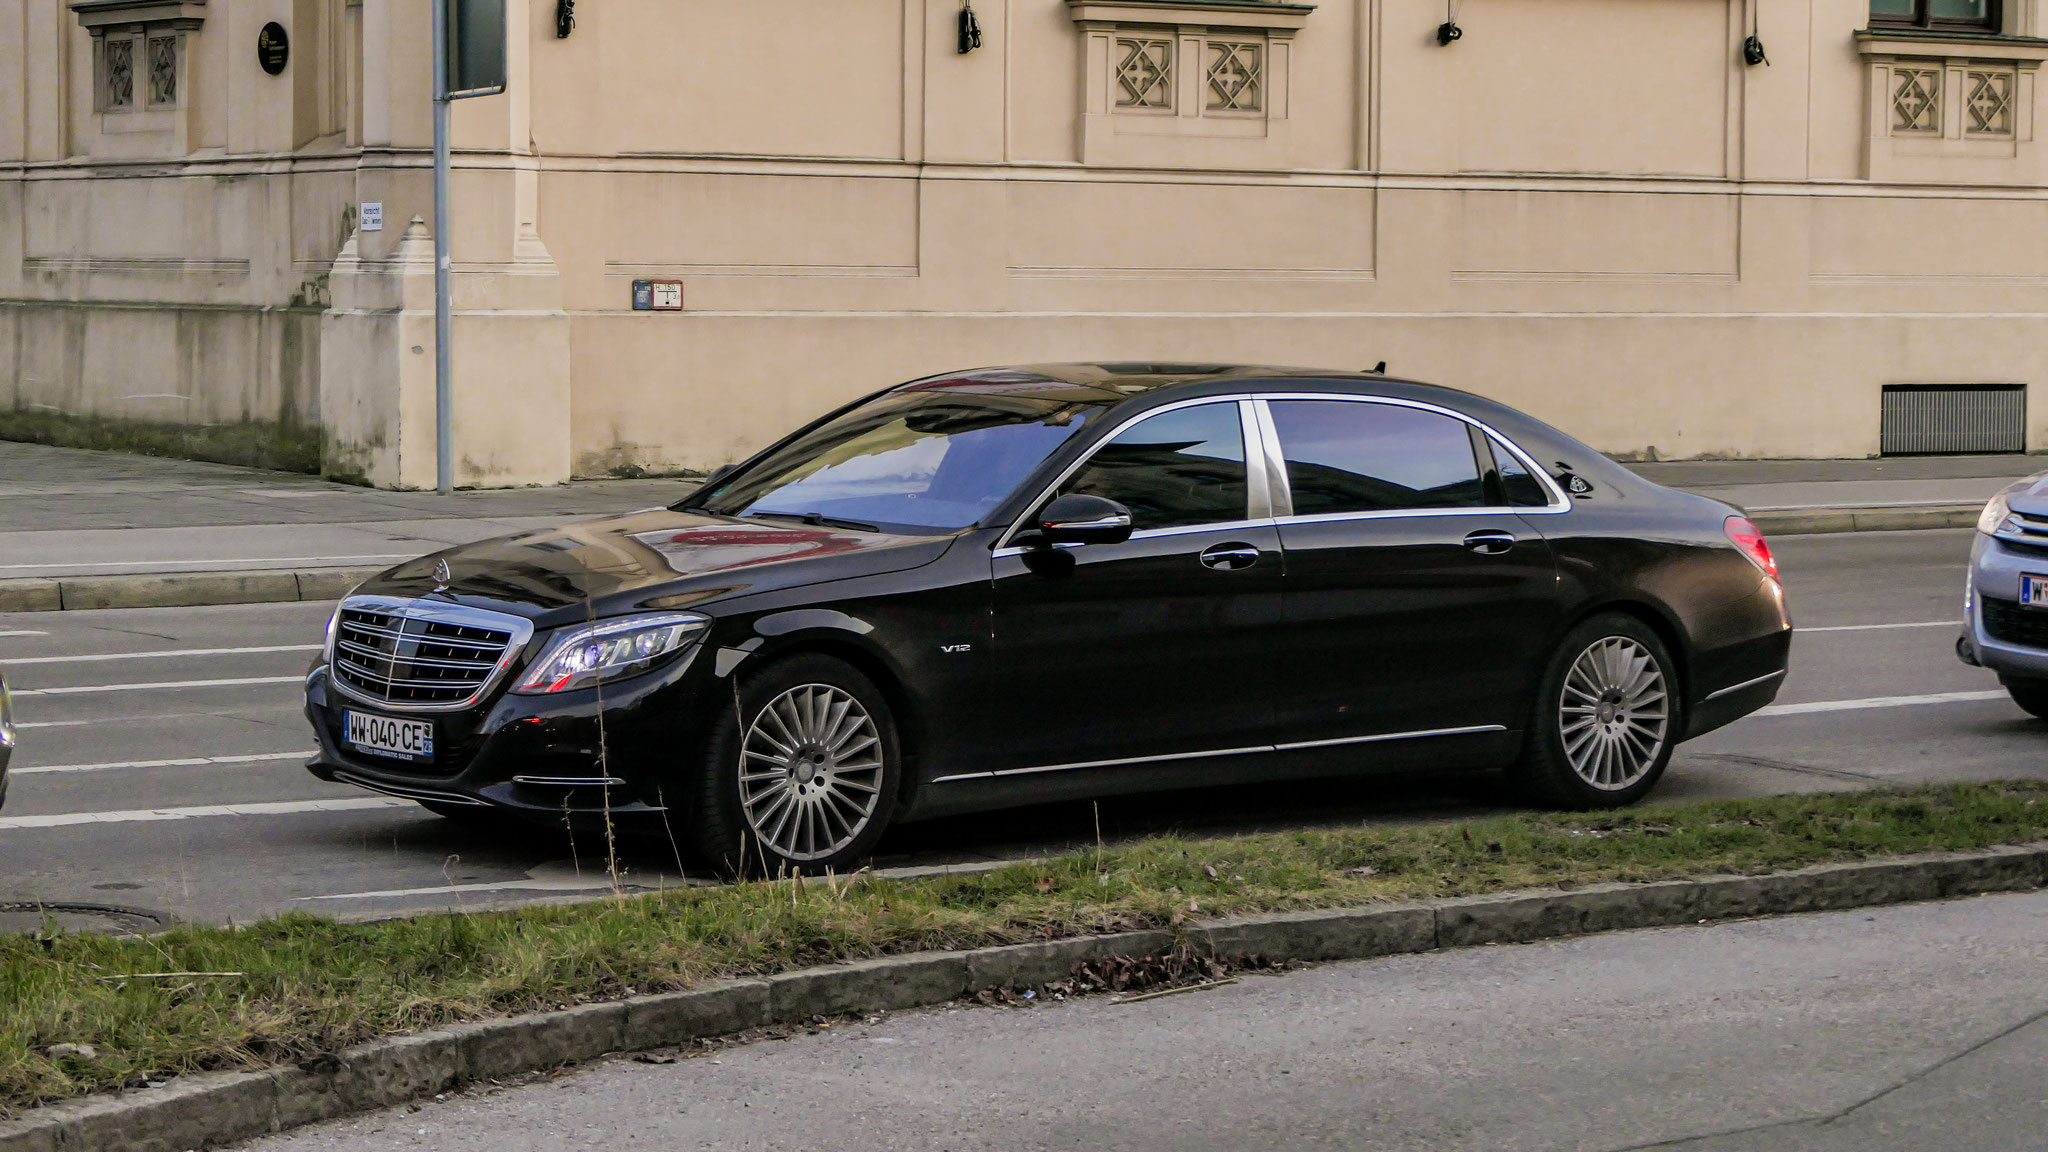 Mercedes Maybach S600 - WW-040-CE-2B (FRA)